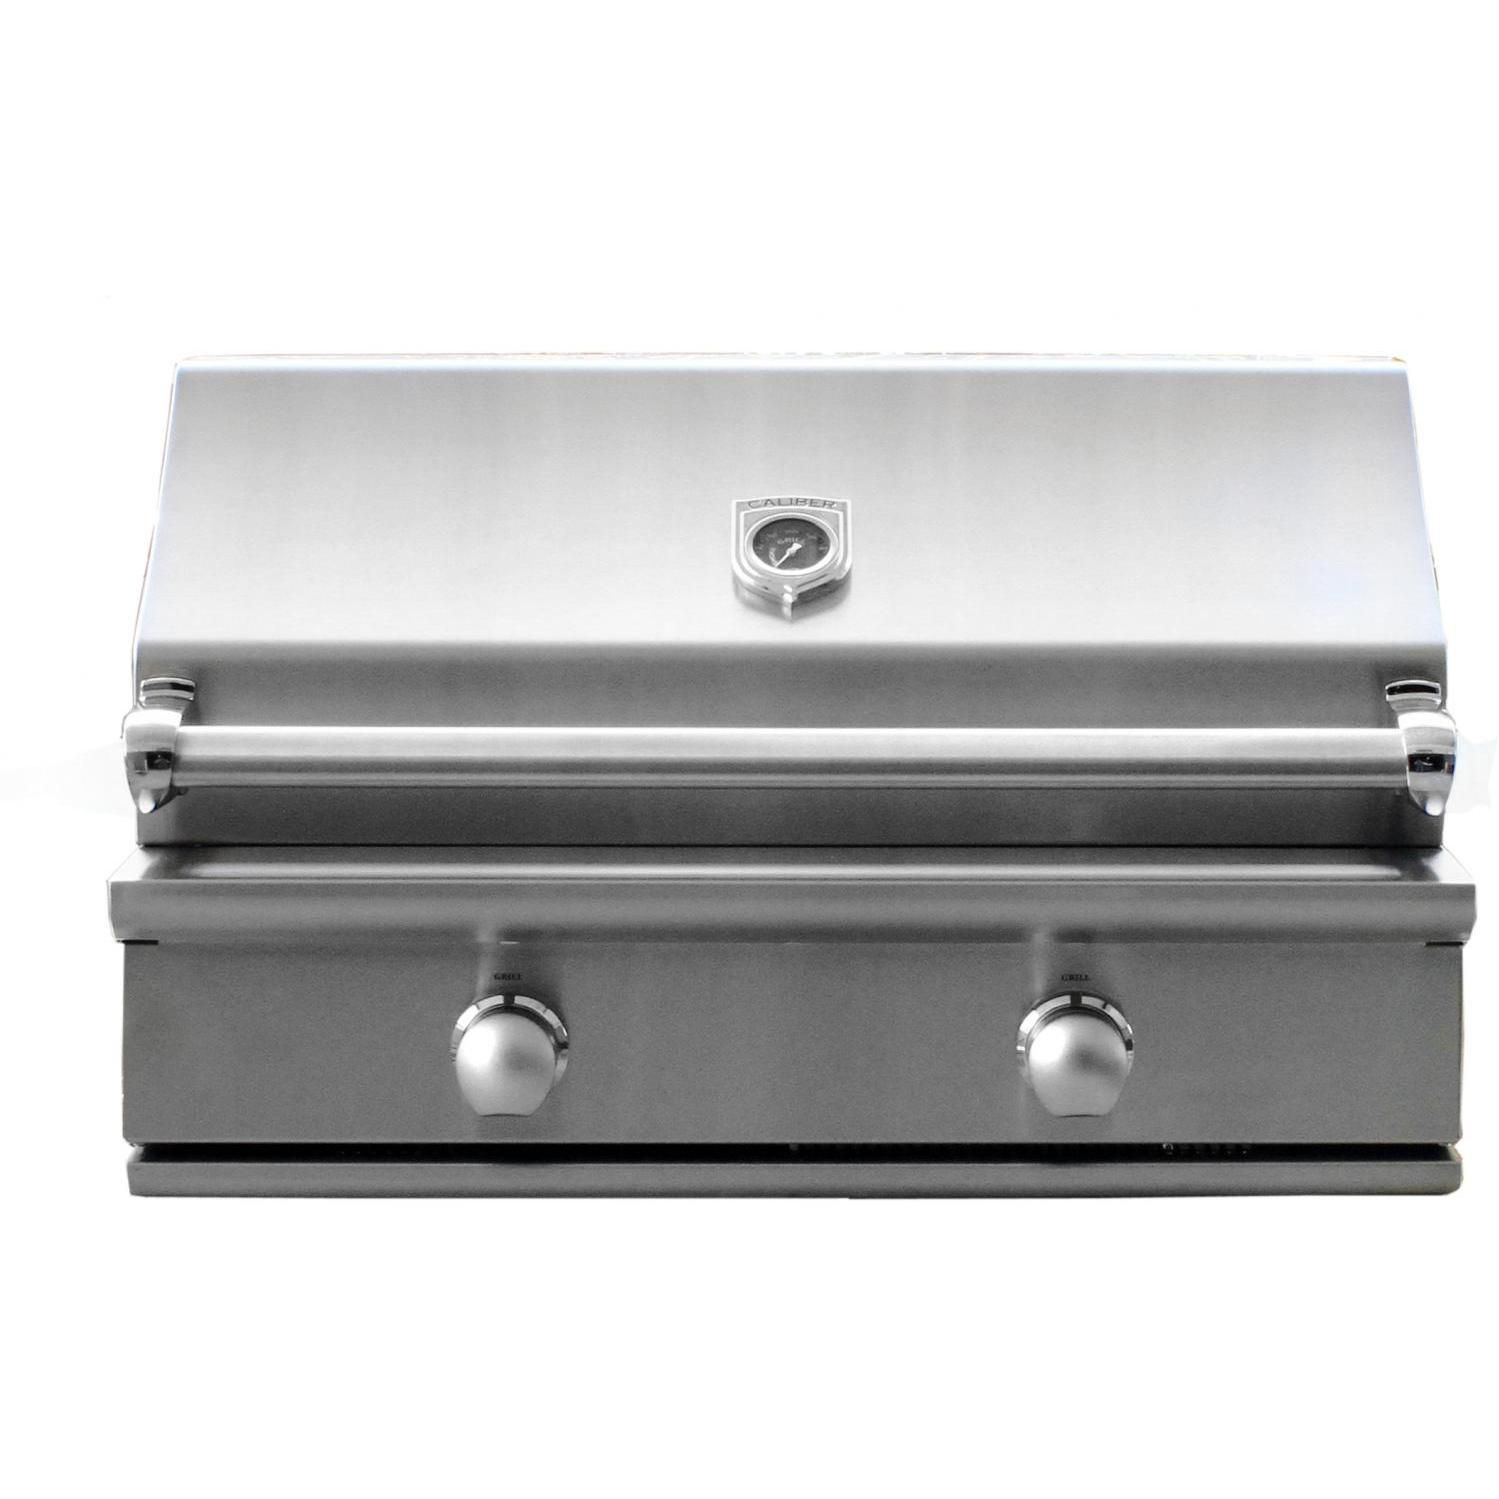 Caliber Crossflame Silver 35 Inch Built In Gas Grill Review Gas Grill Reviews Propane Gas Grill Gas Grill